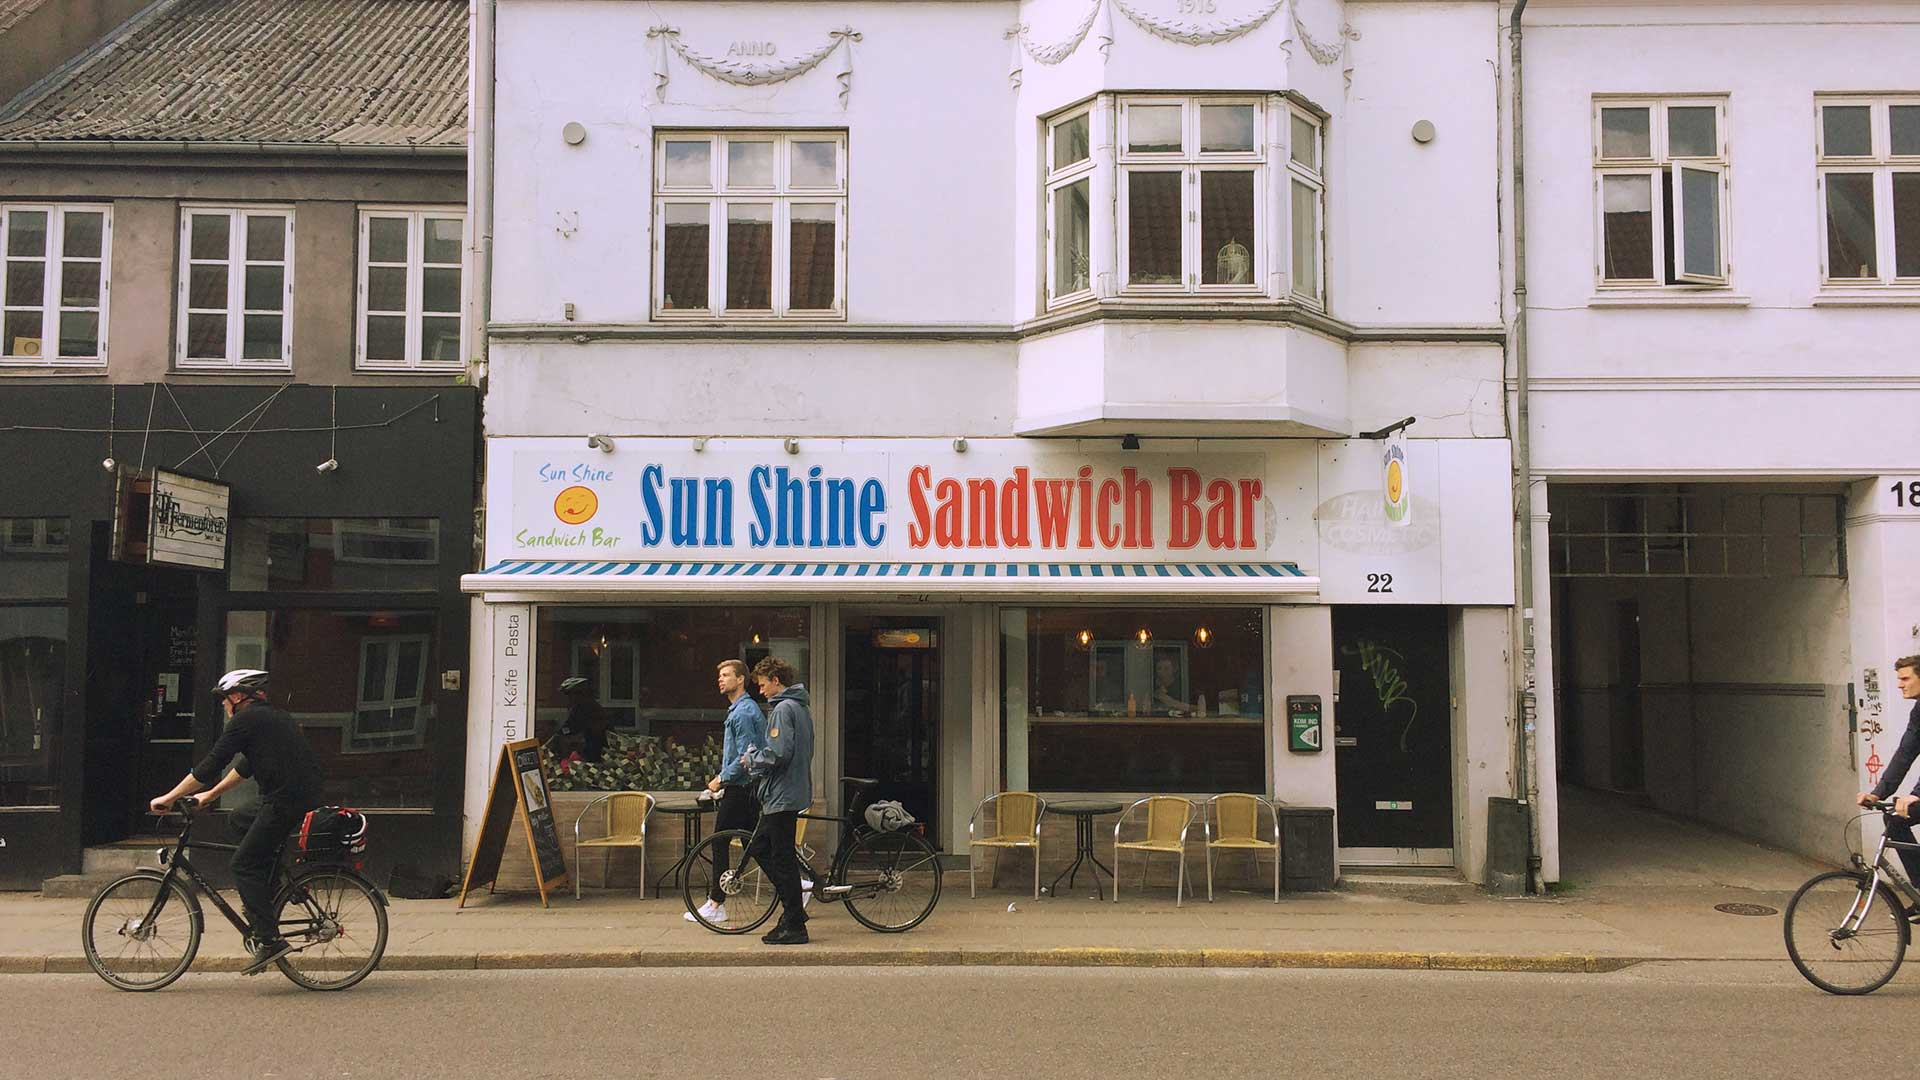 A picture of the exterior of Sunshine Sandwich bar